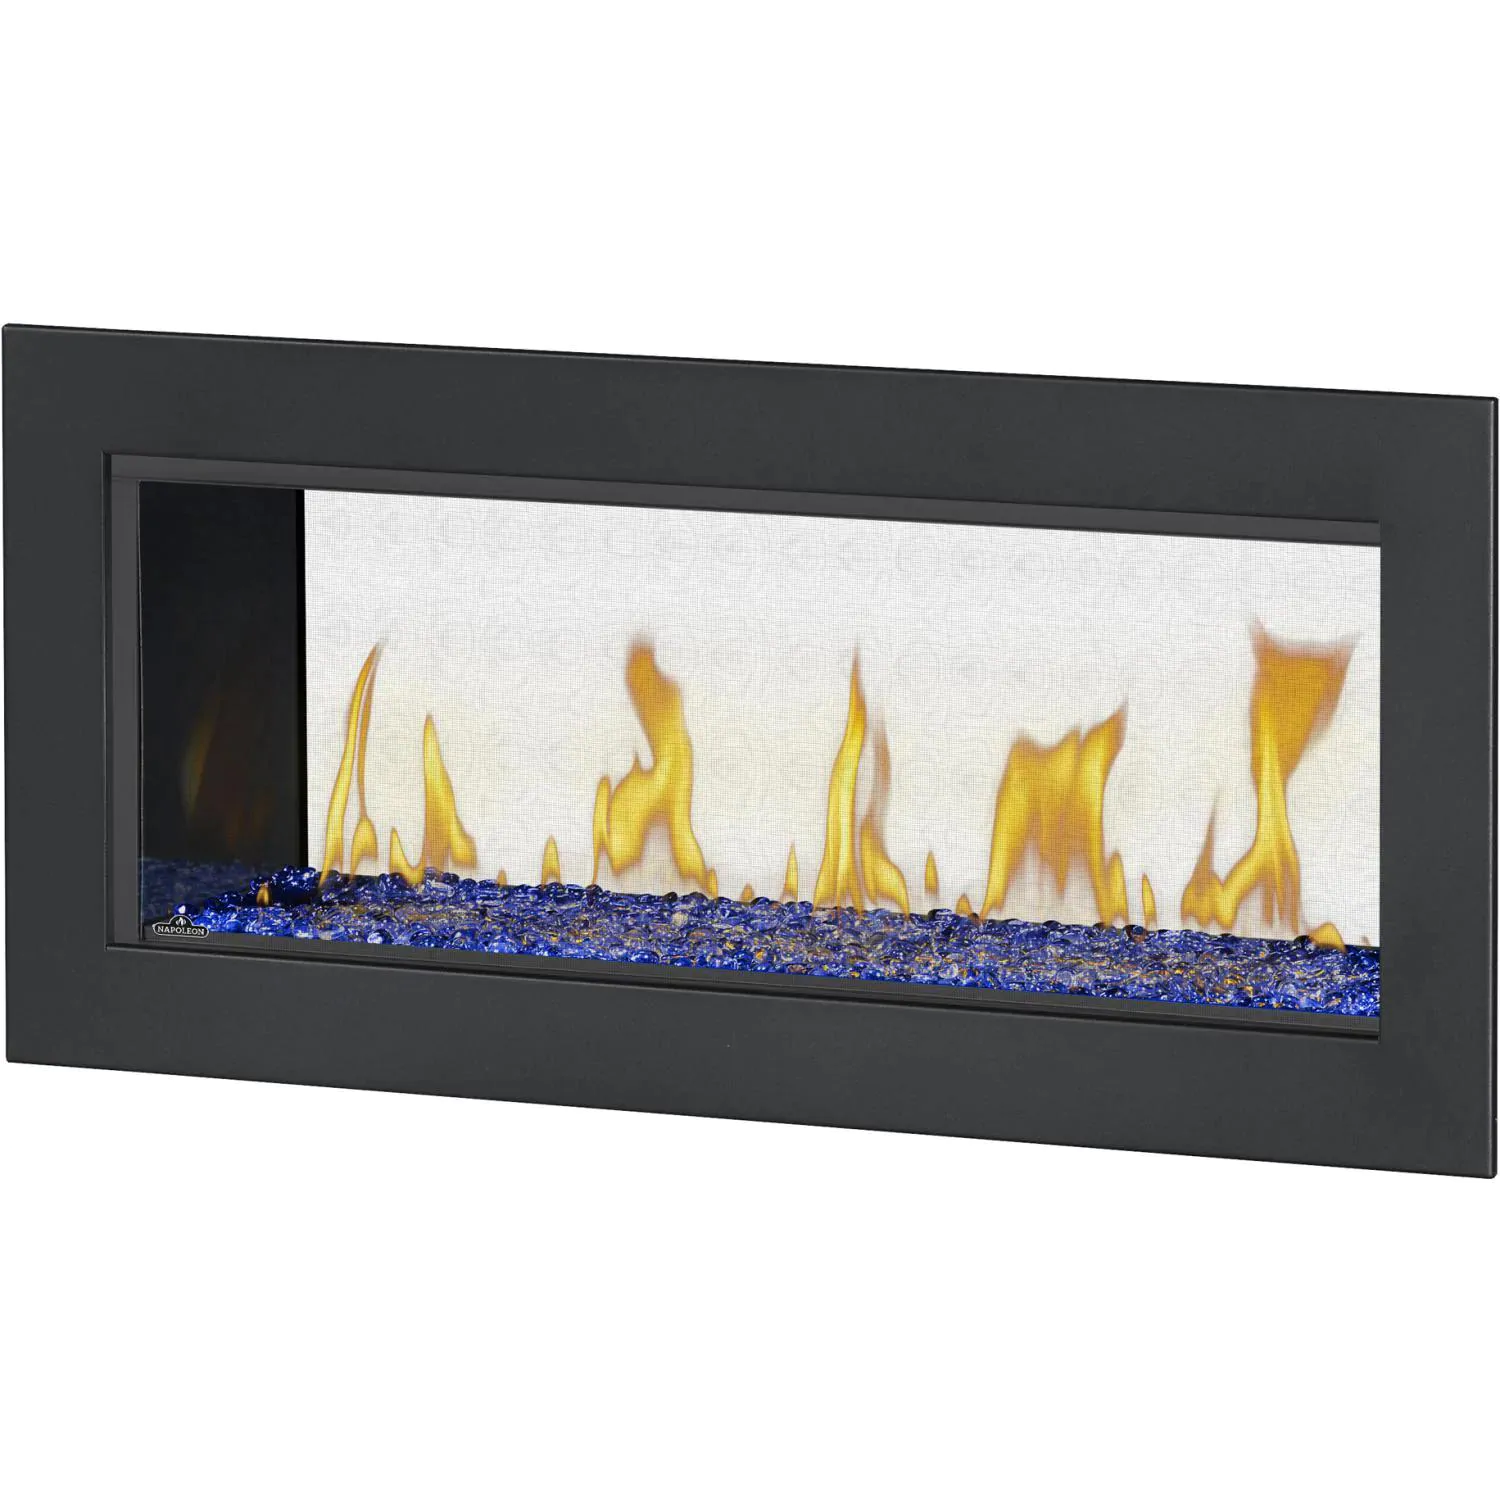 Napoleon Vector 38 See Thru Built-In Direct Vent Natural Gas Fireplace W/ Electronic Ignition - LV38N2-1